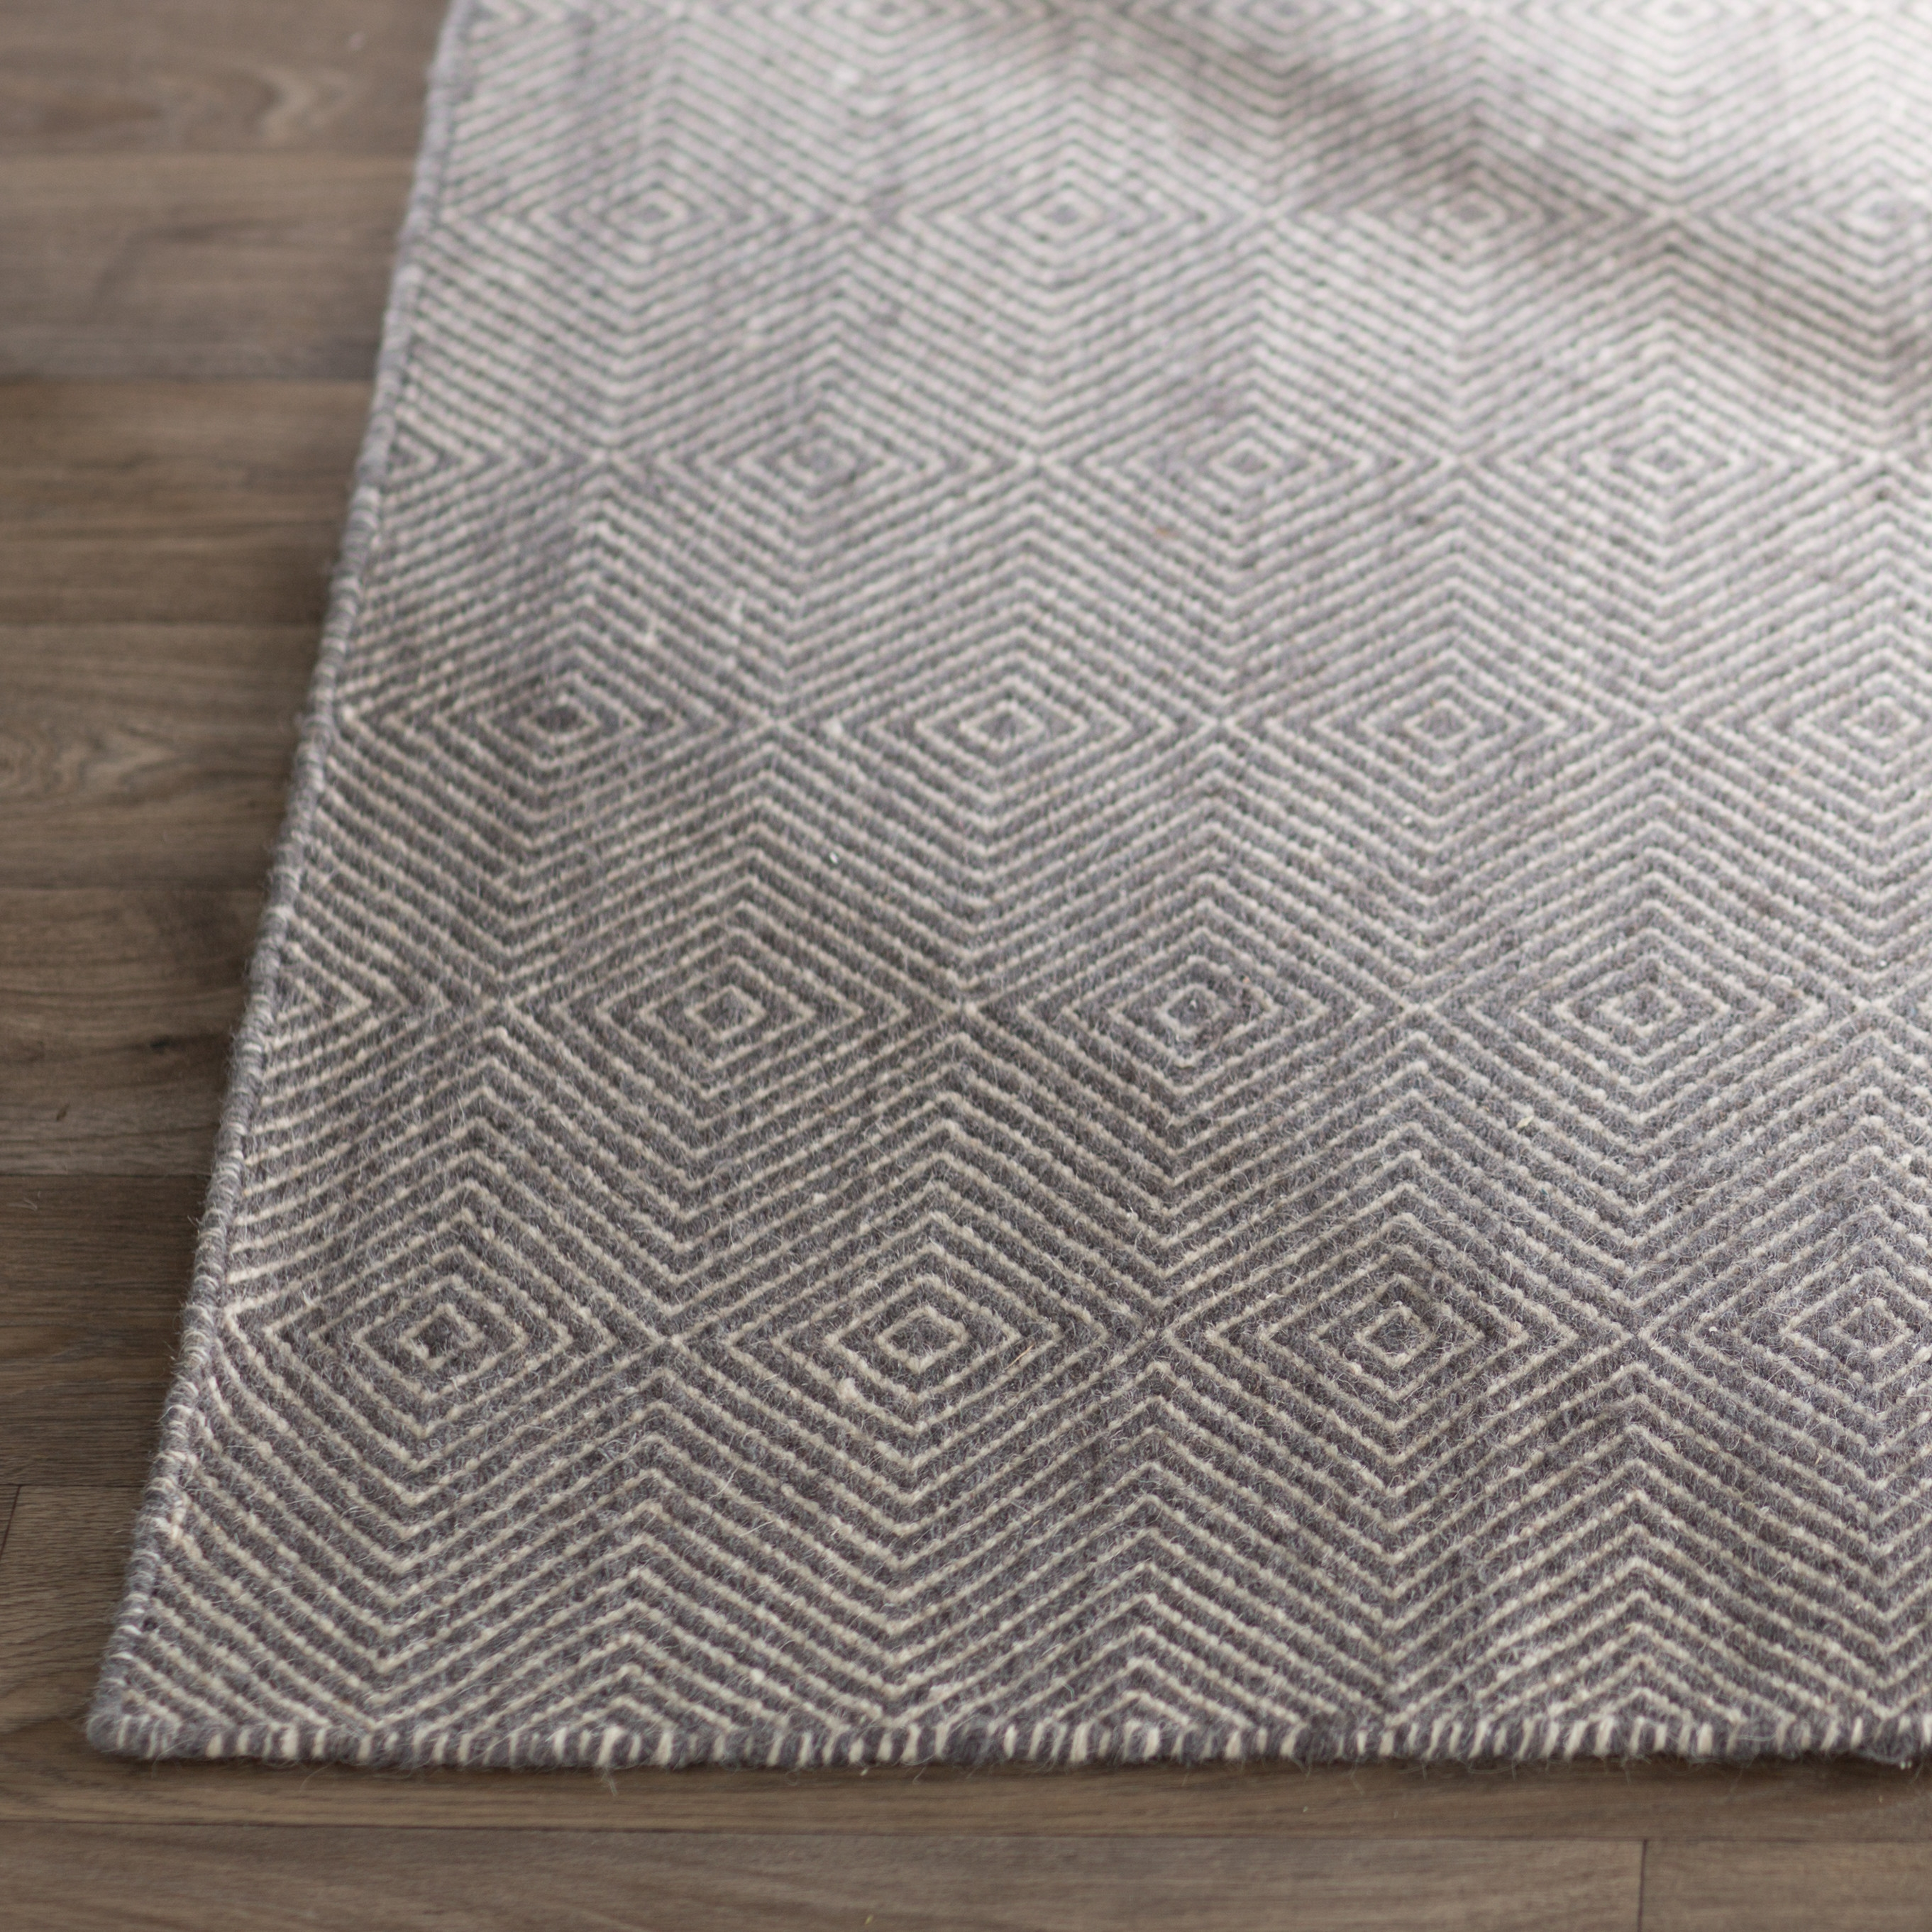 Woven Area Rugs Roselawnlutheran For Wool Flat Weave Area Rugs (#14 of 15)